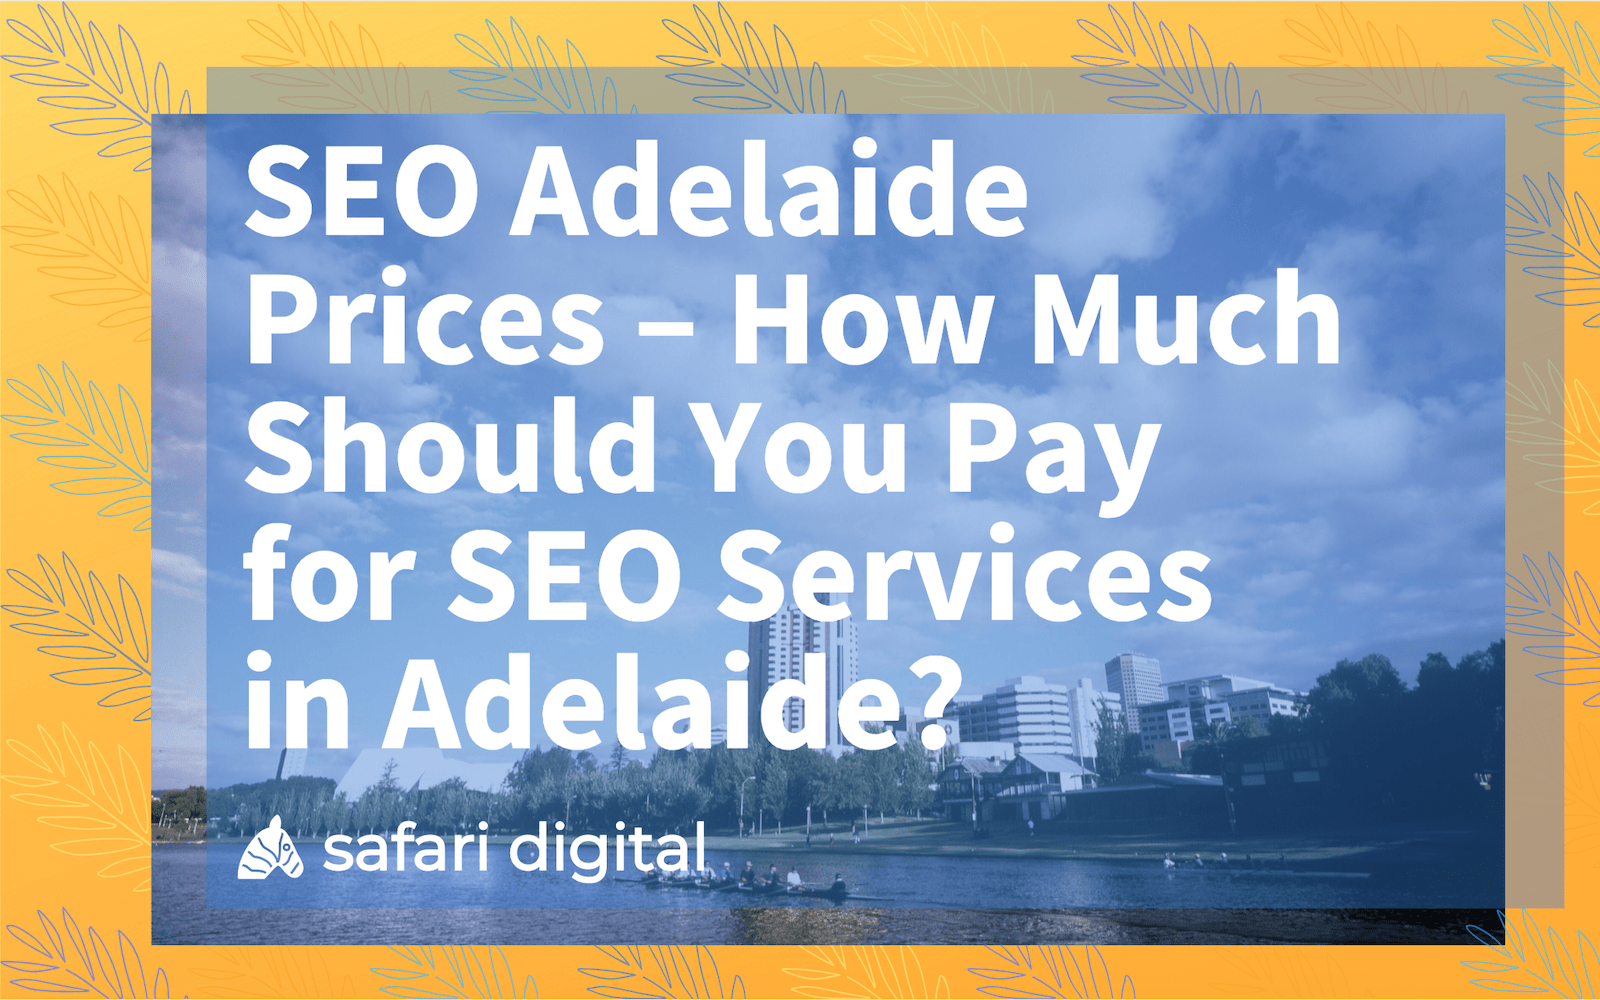 SEO adelaide prices cover image large